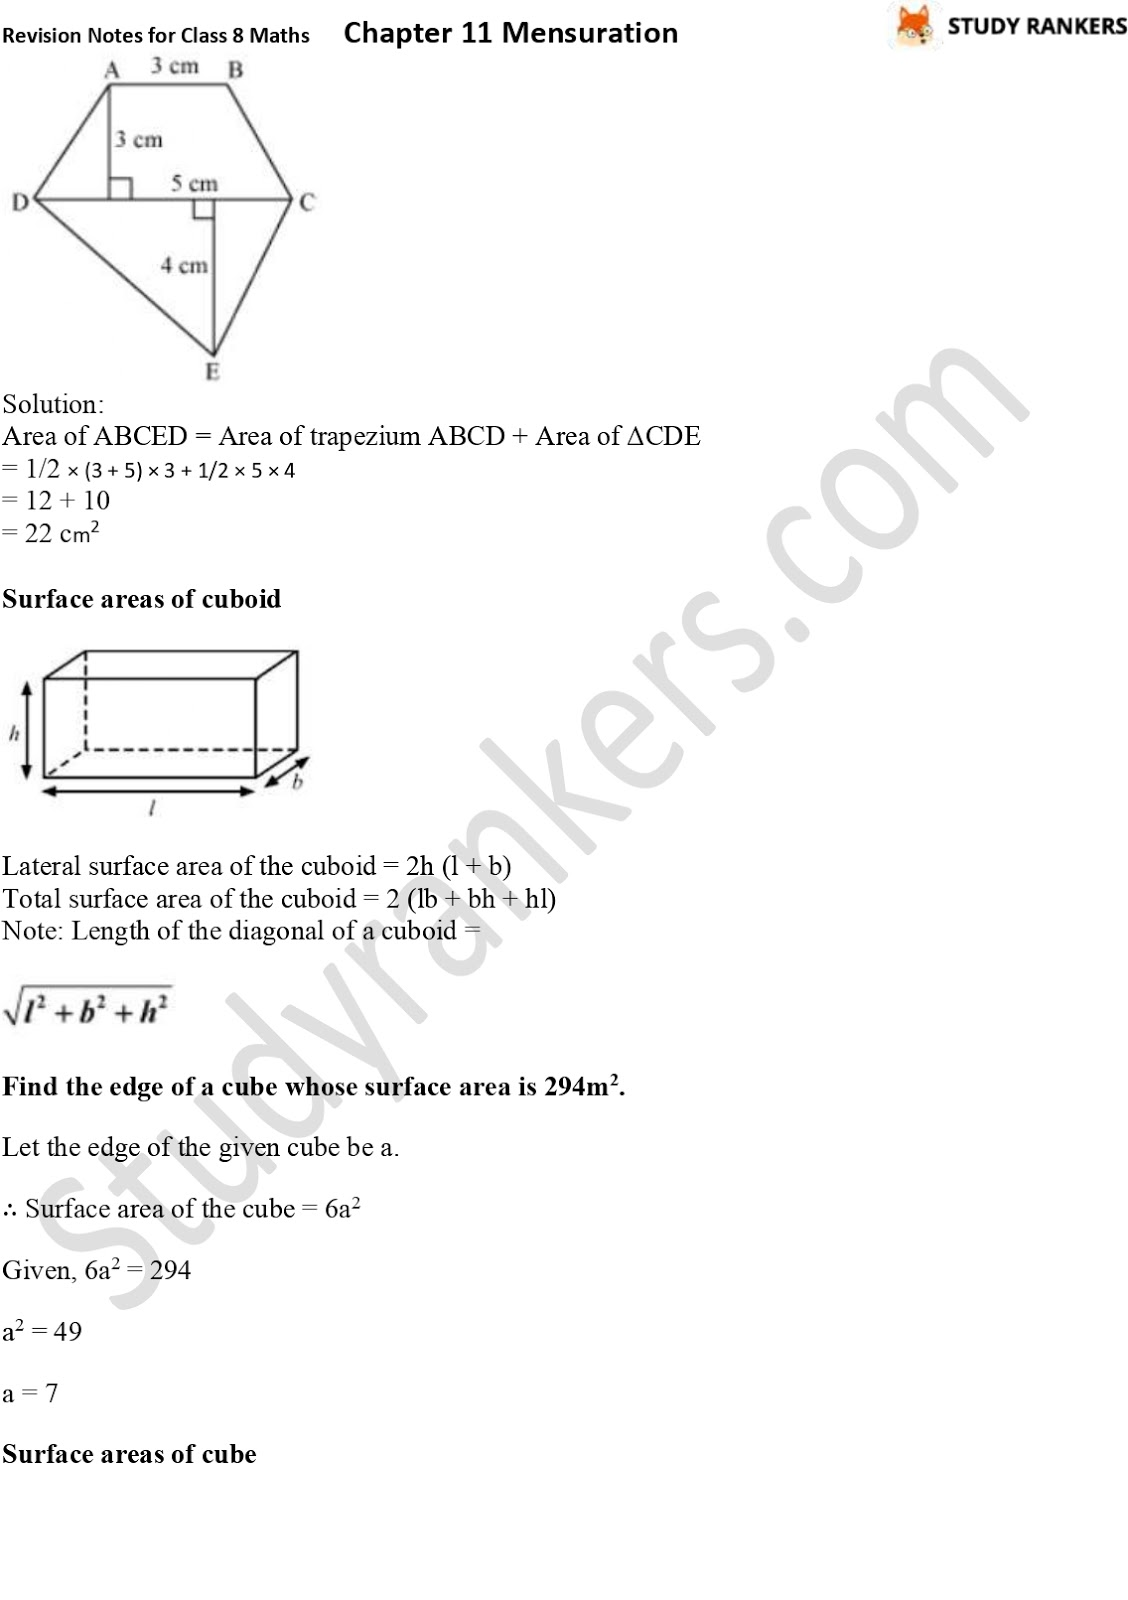 CBSE Revision Notes for Class 8 Chapter 11 Mensuration Part 3